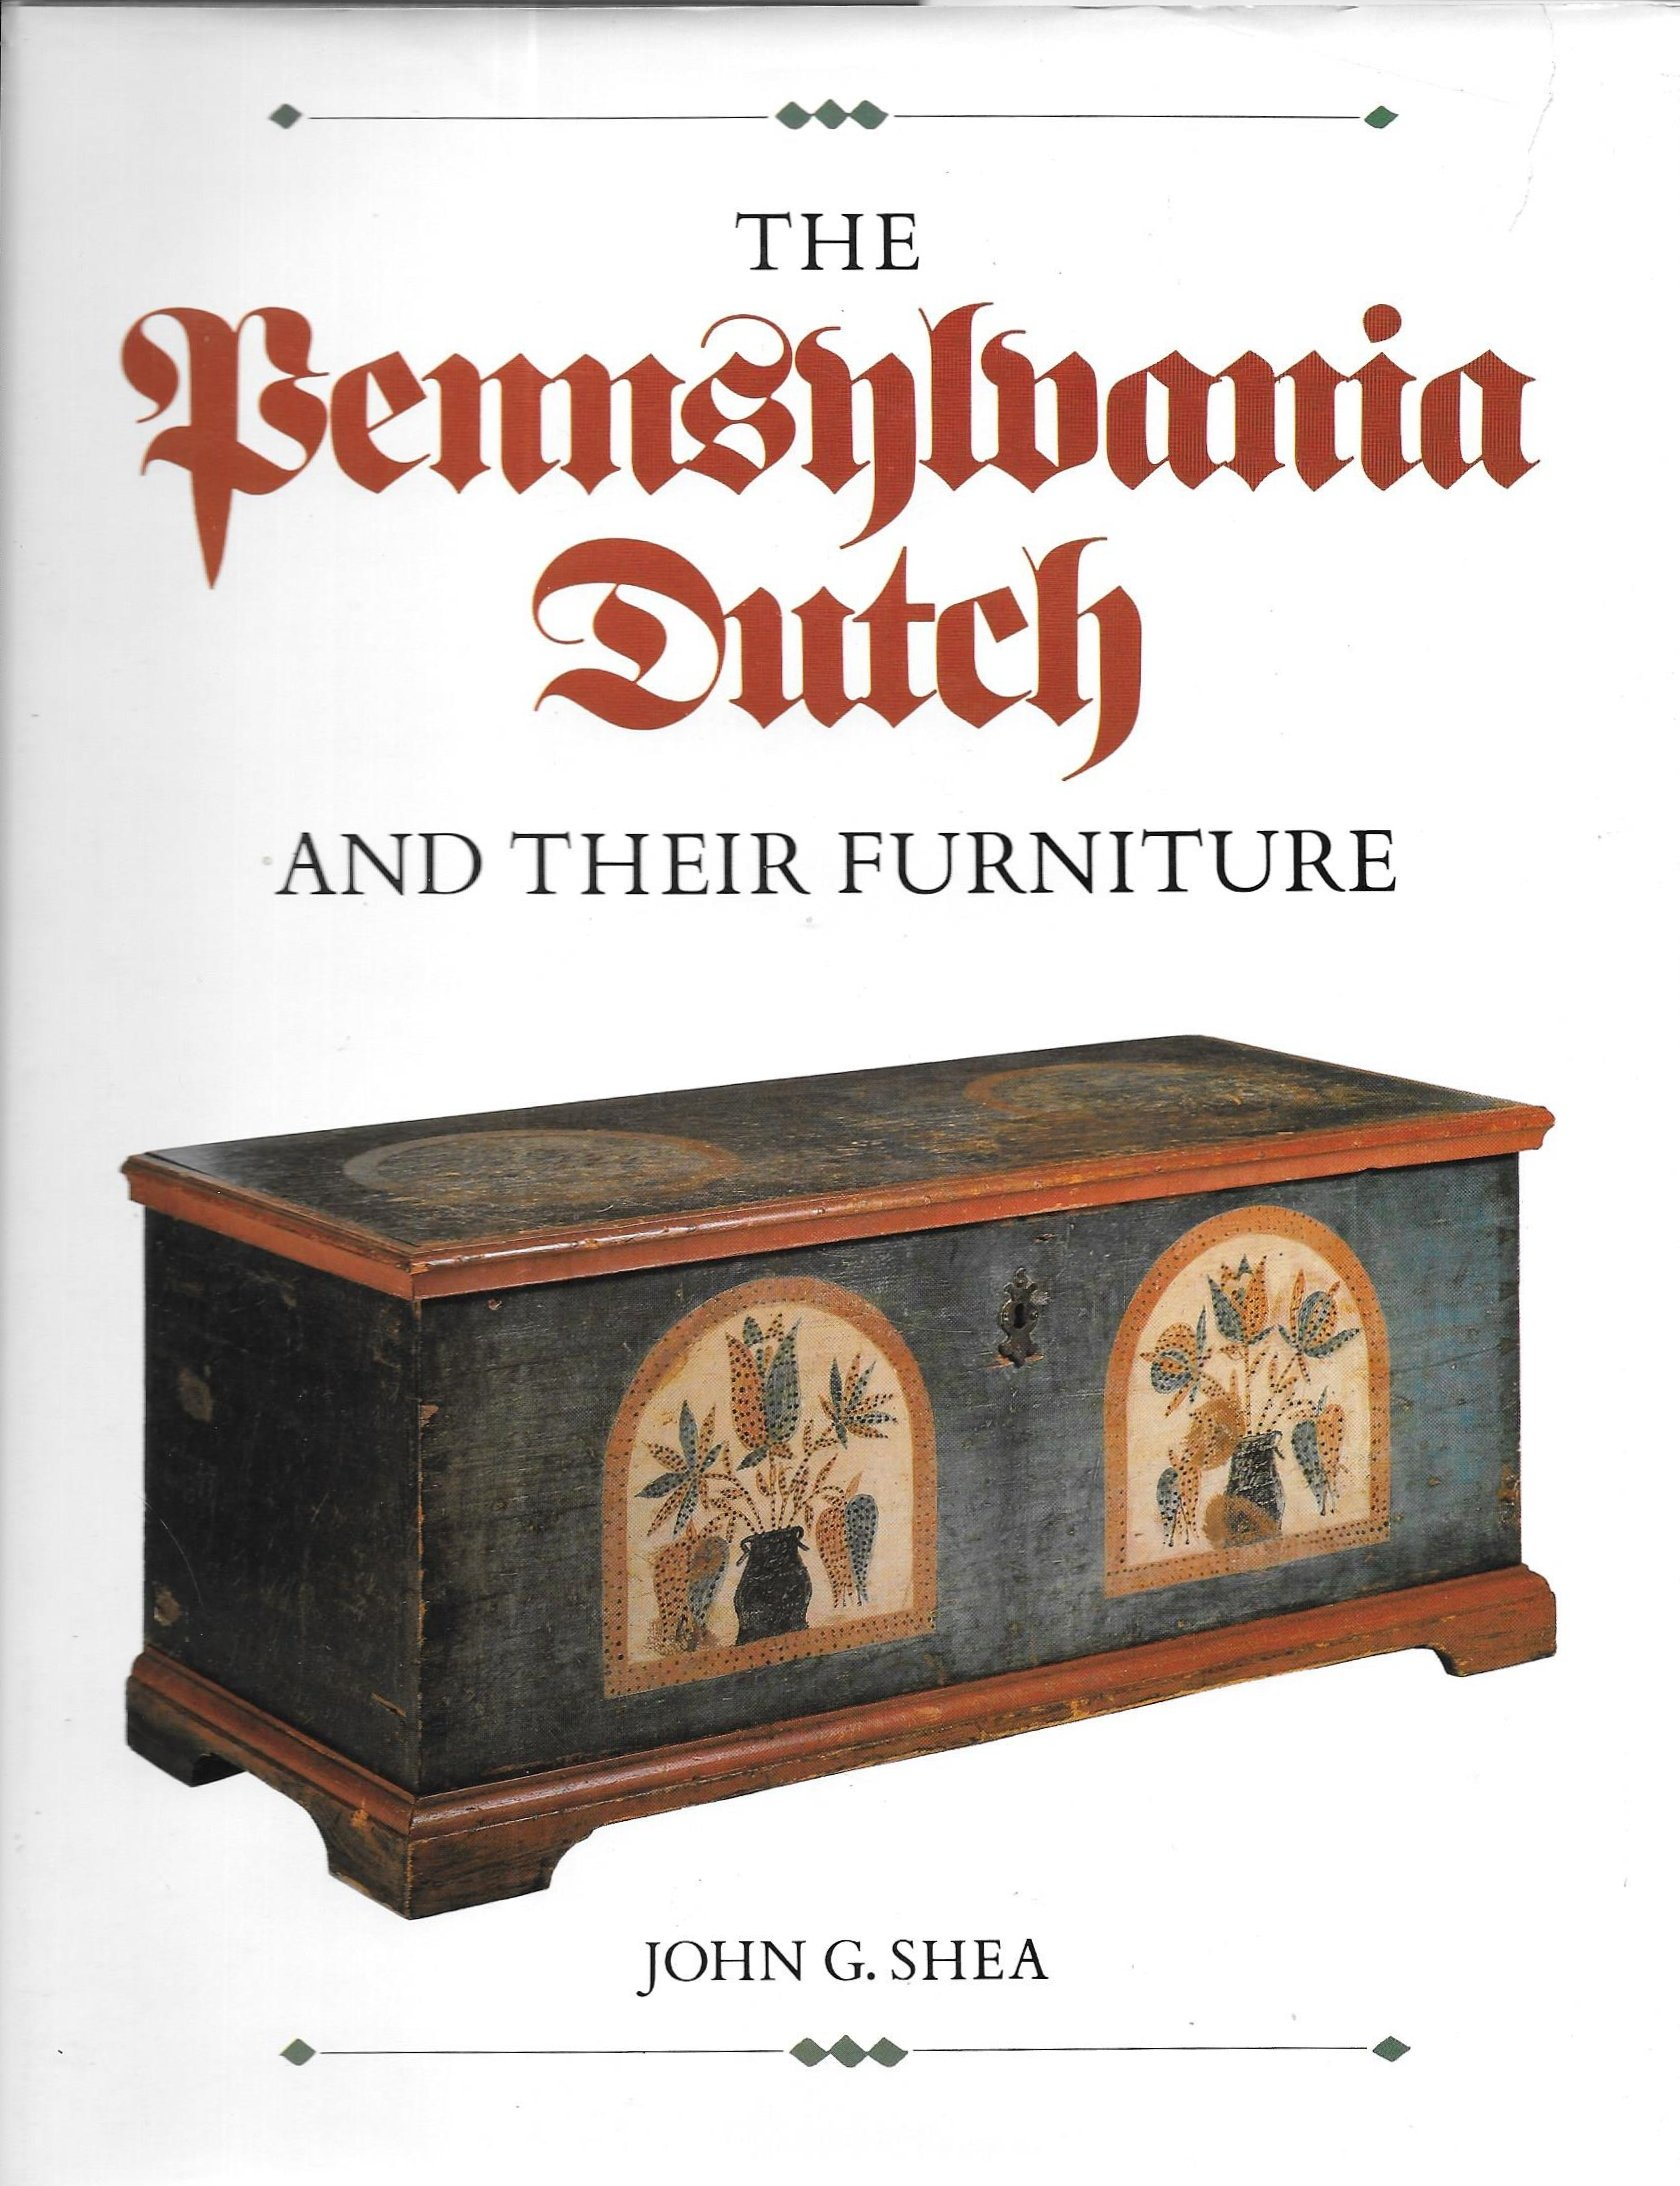 Pennsylvania Dutch And Their Furniture: John G. Shea: Amazon.com: Books